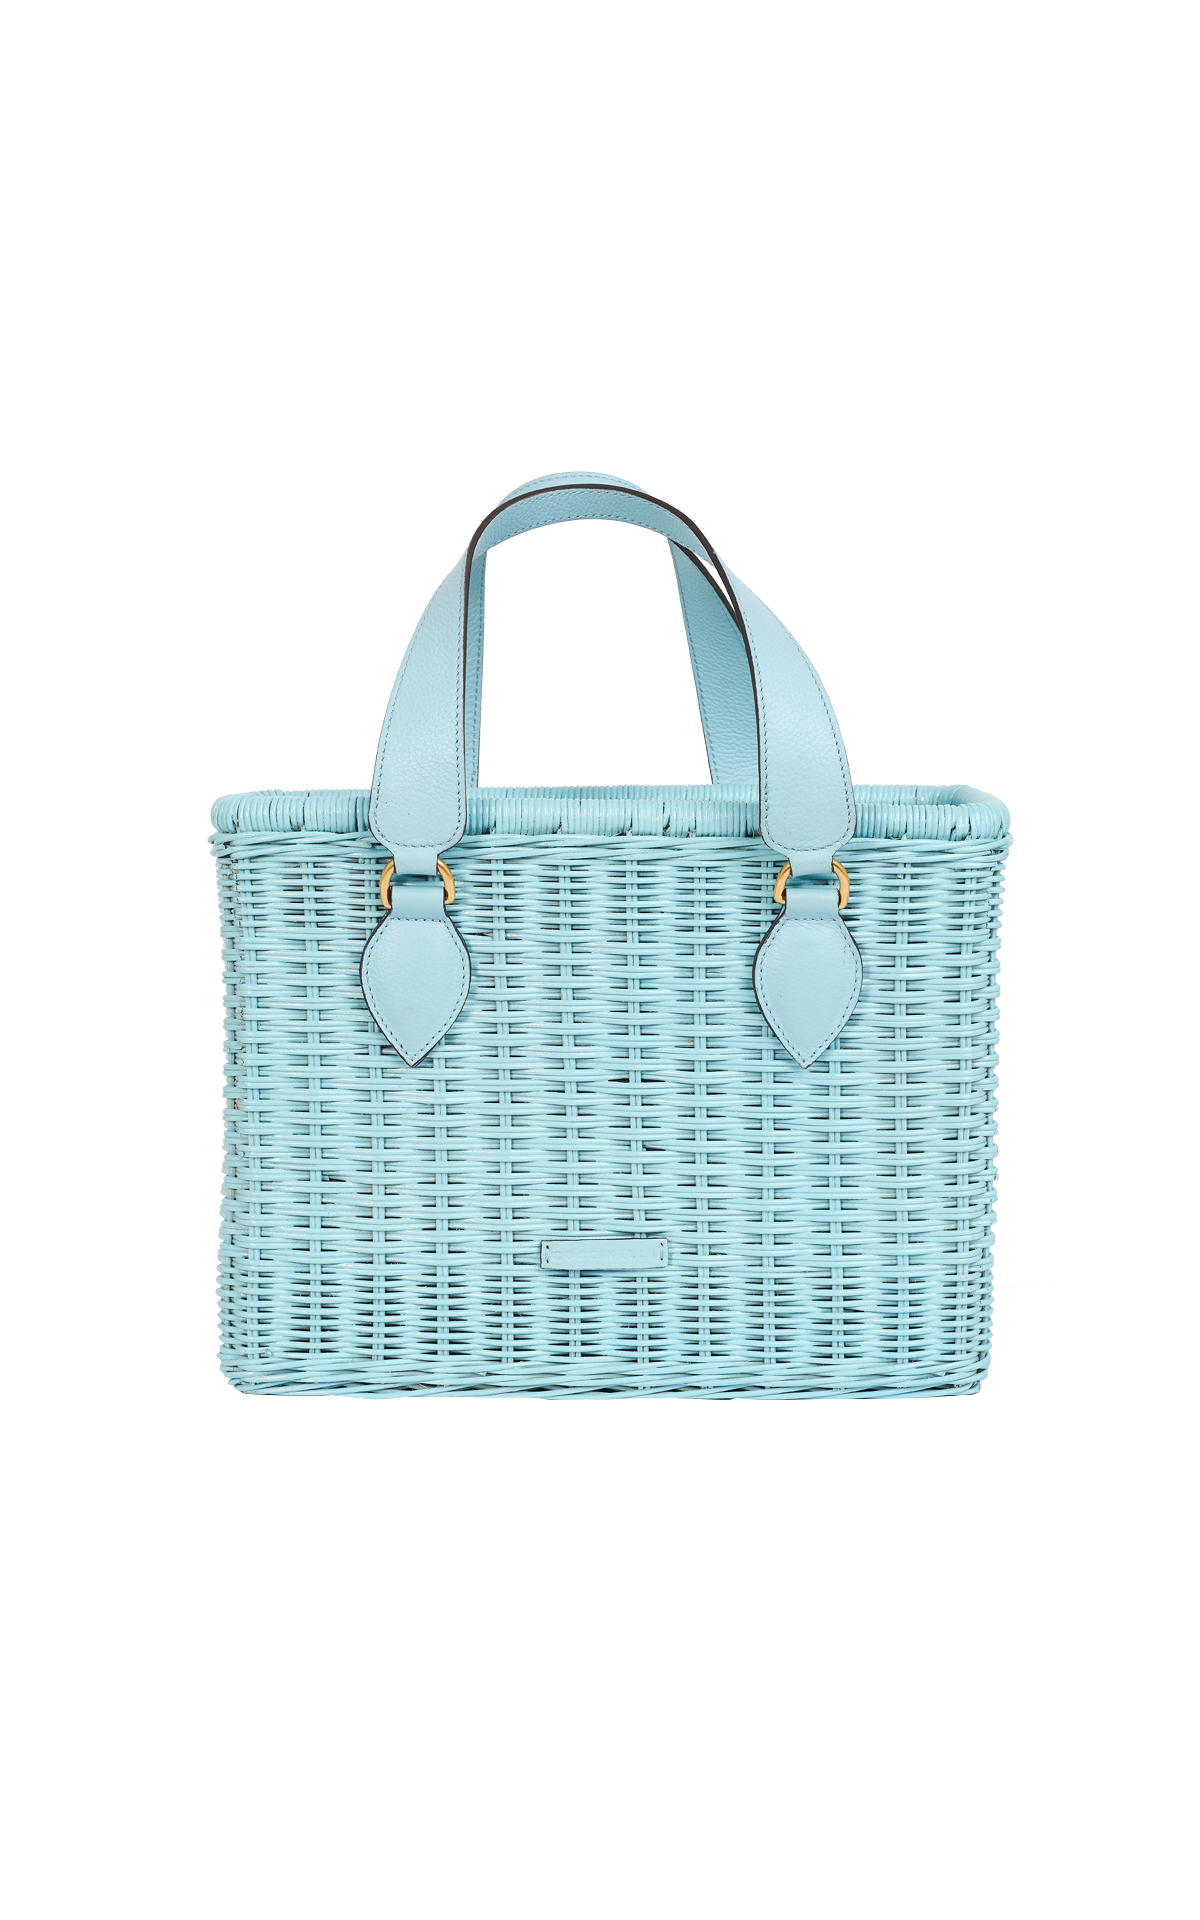 Blue wicker bag from Coccinelle